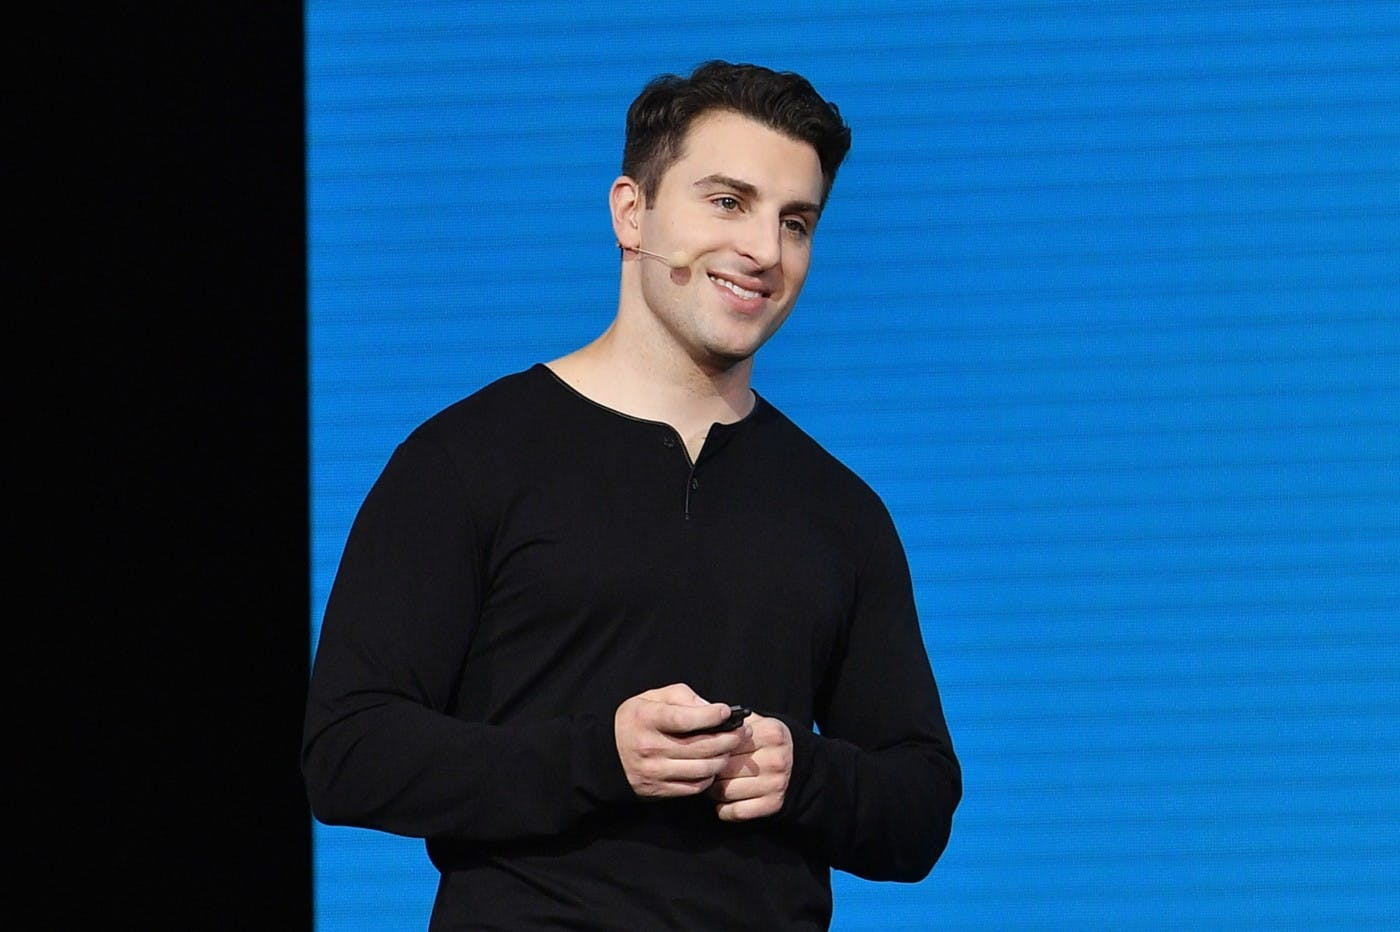 AIRBNB'S BRIAN CHESKY: THE TRICK IS TO BE OPTIMISTIC